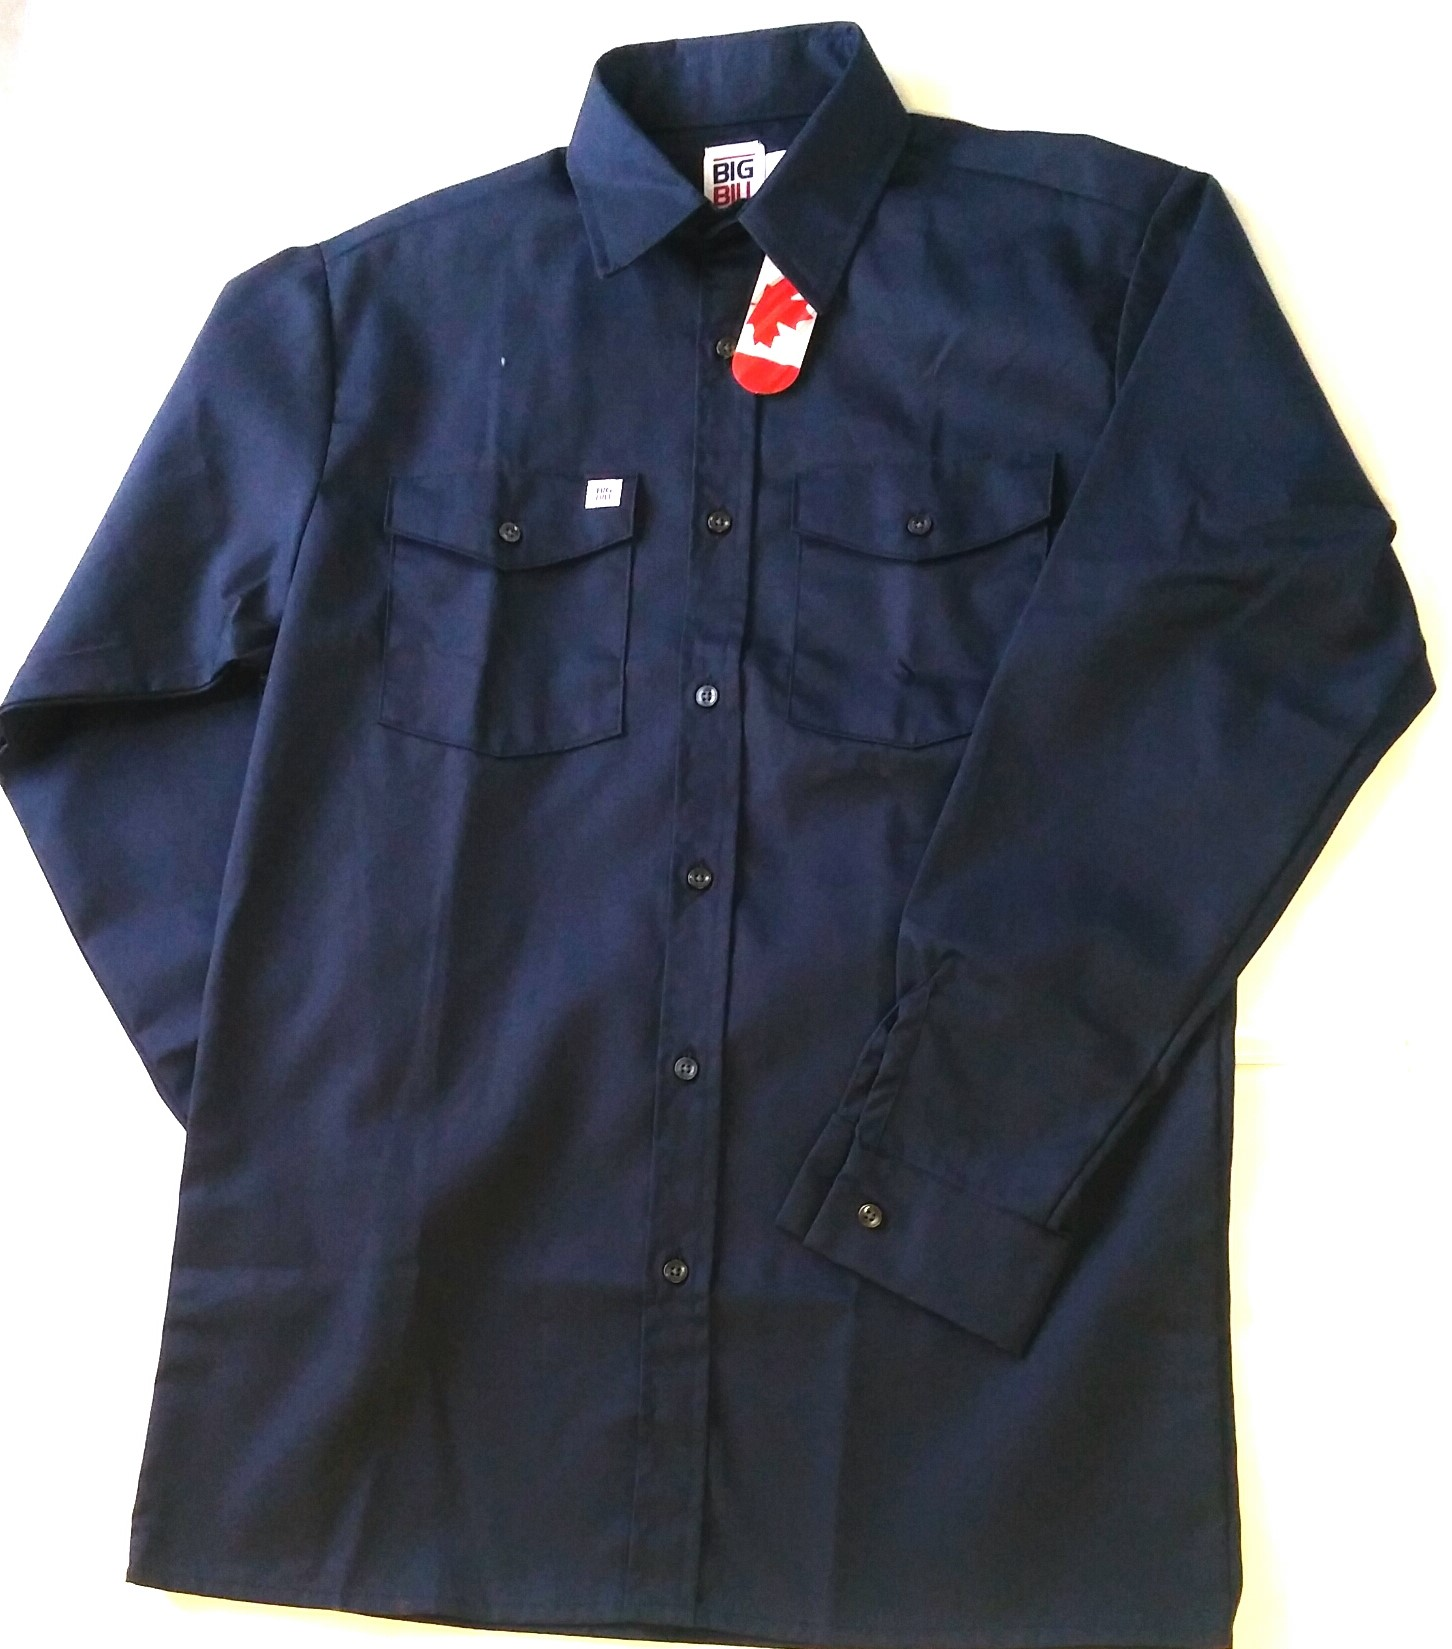 Big bill button up work shirt long sleeve (147)